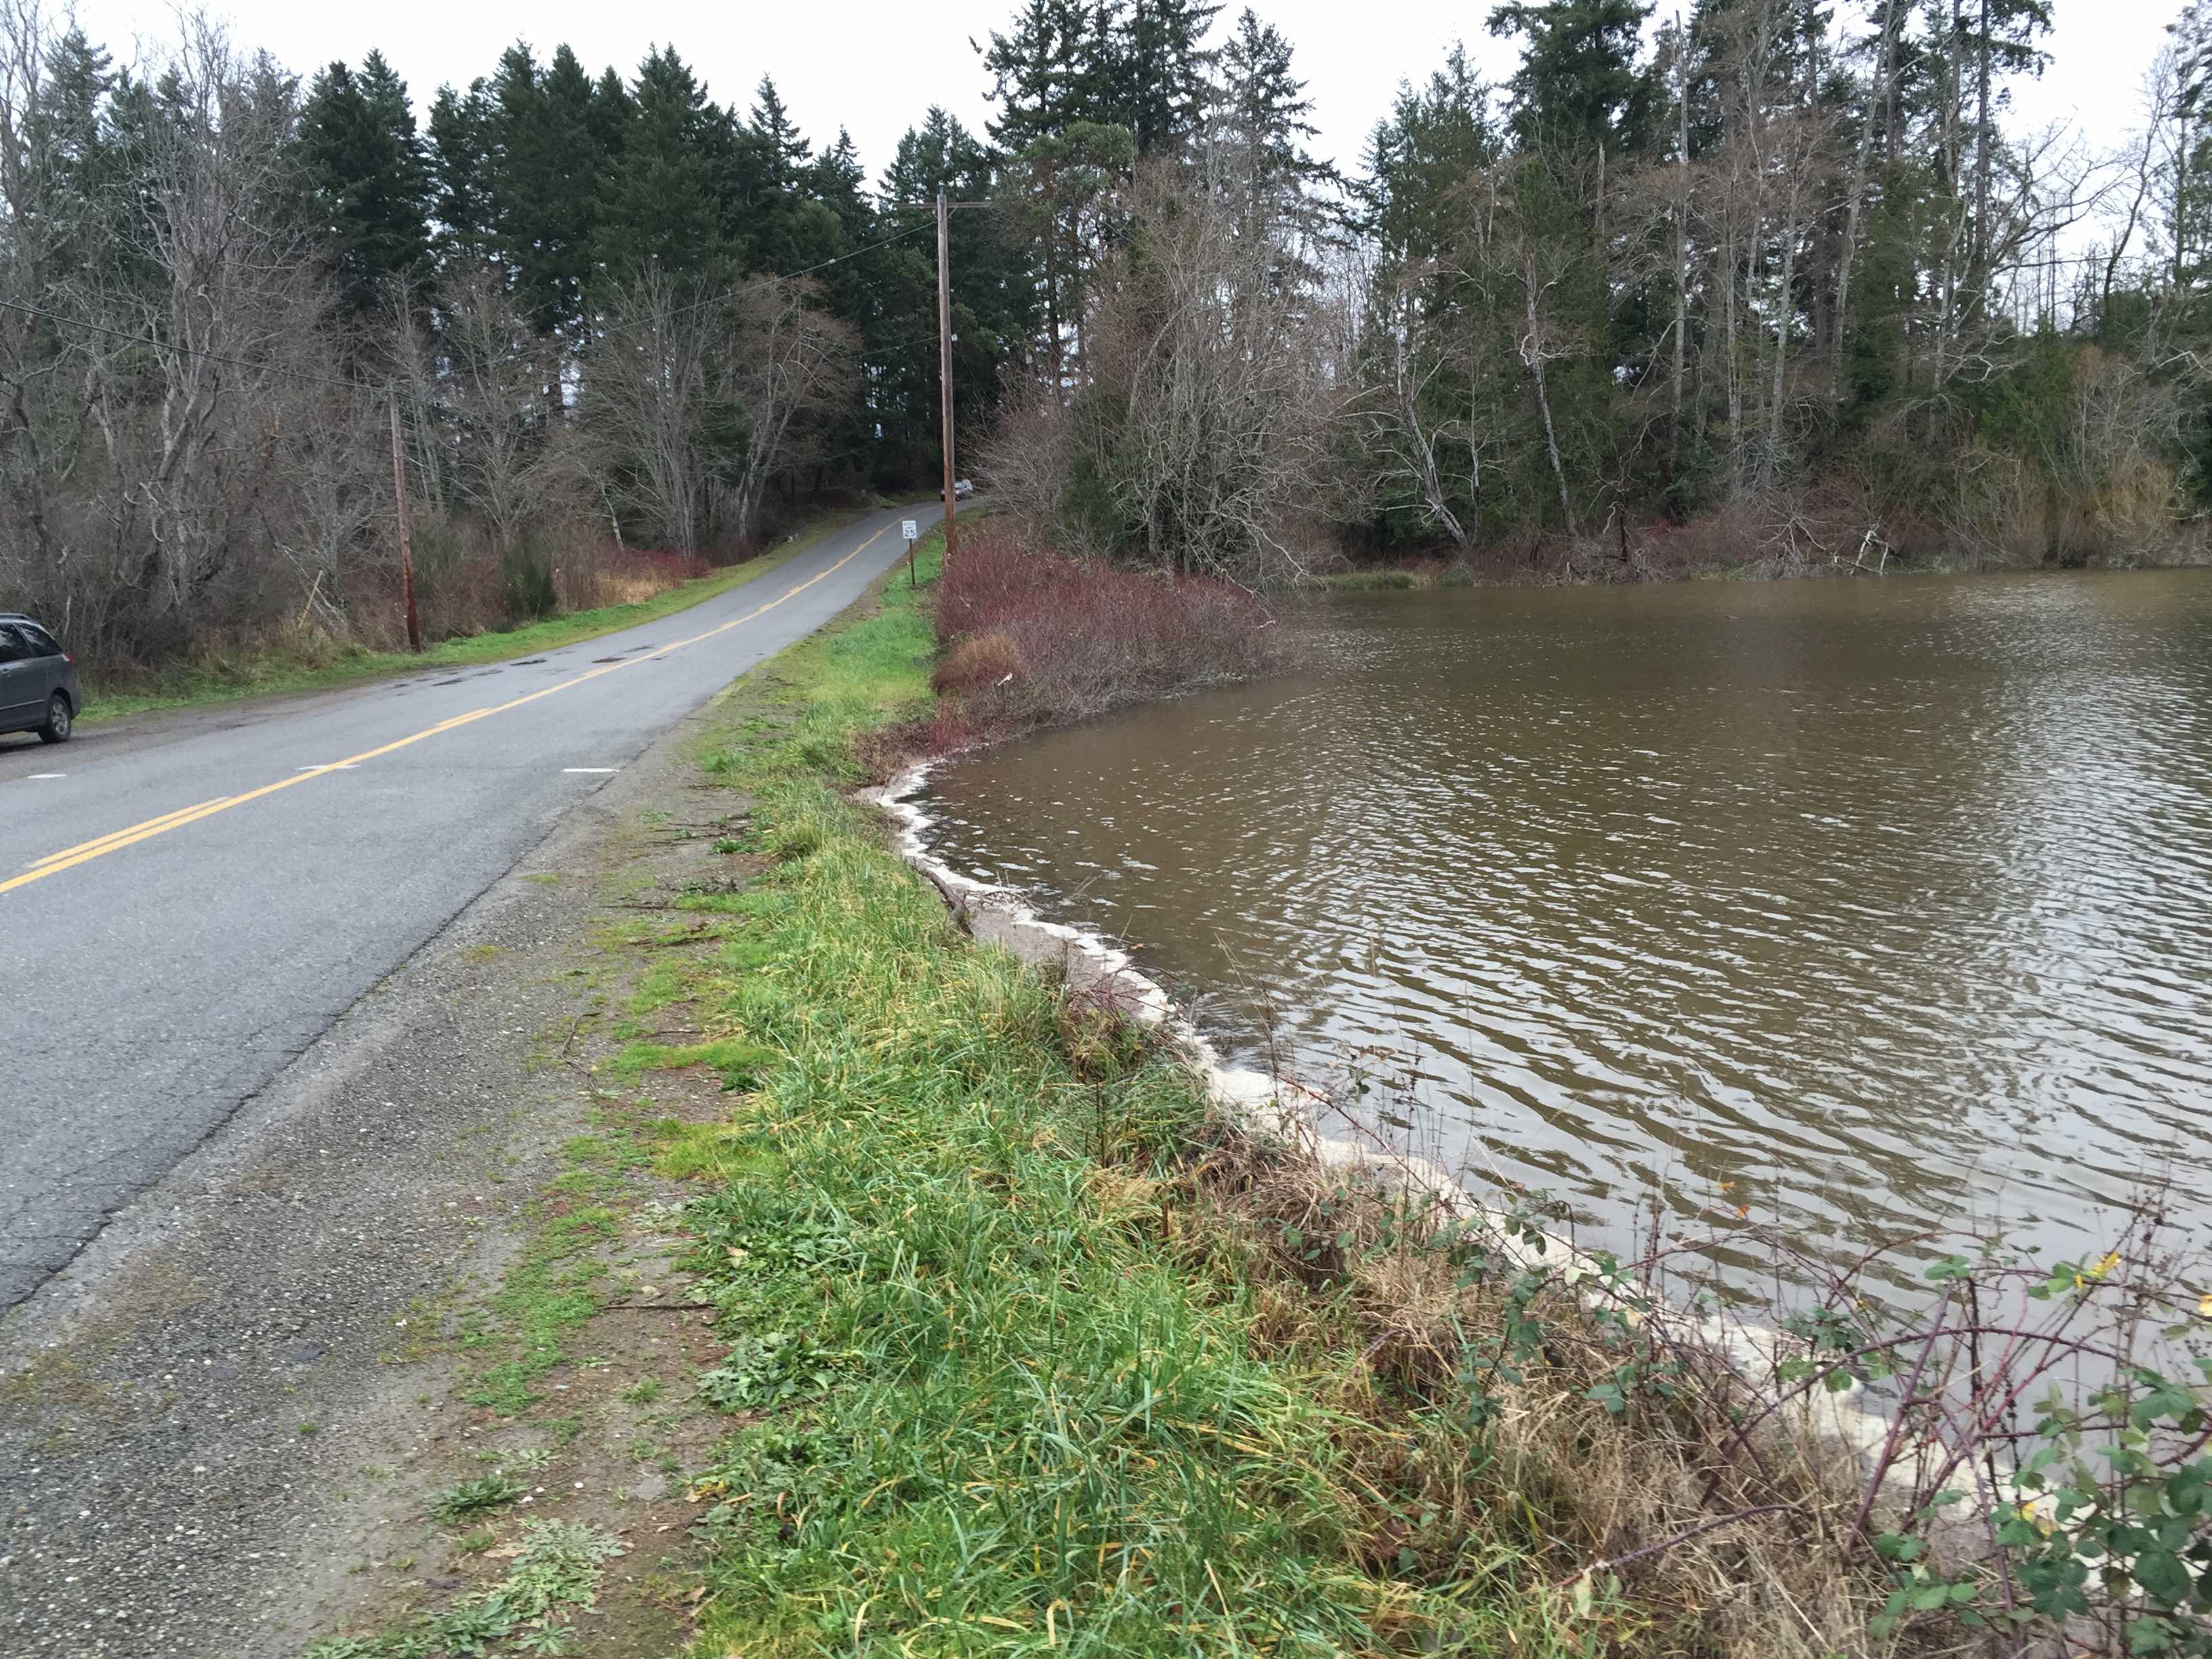 Olympiad Drive crosses Harper Estuary. Photo: Kitsap County Public Works